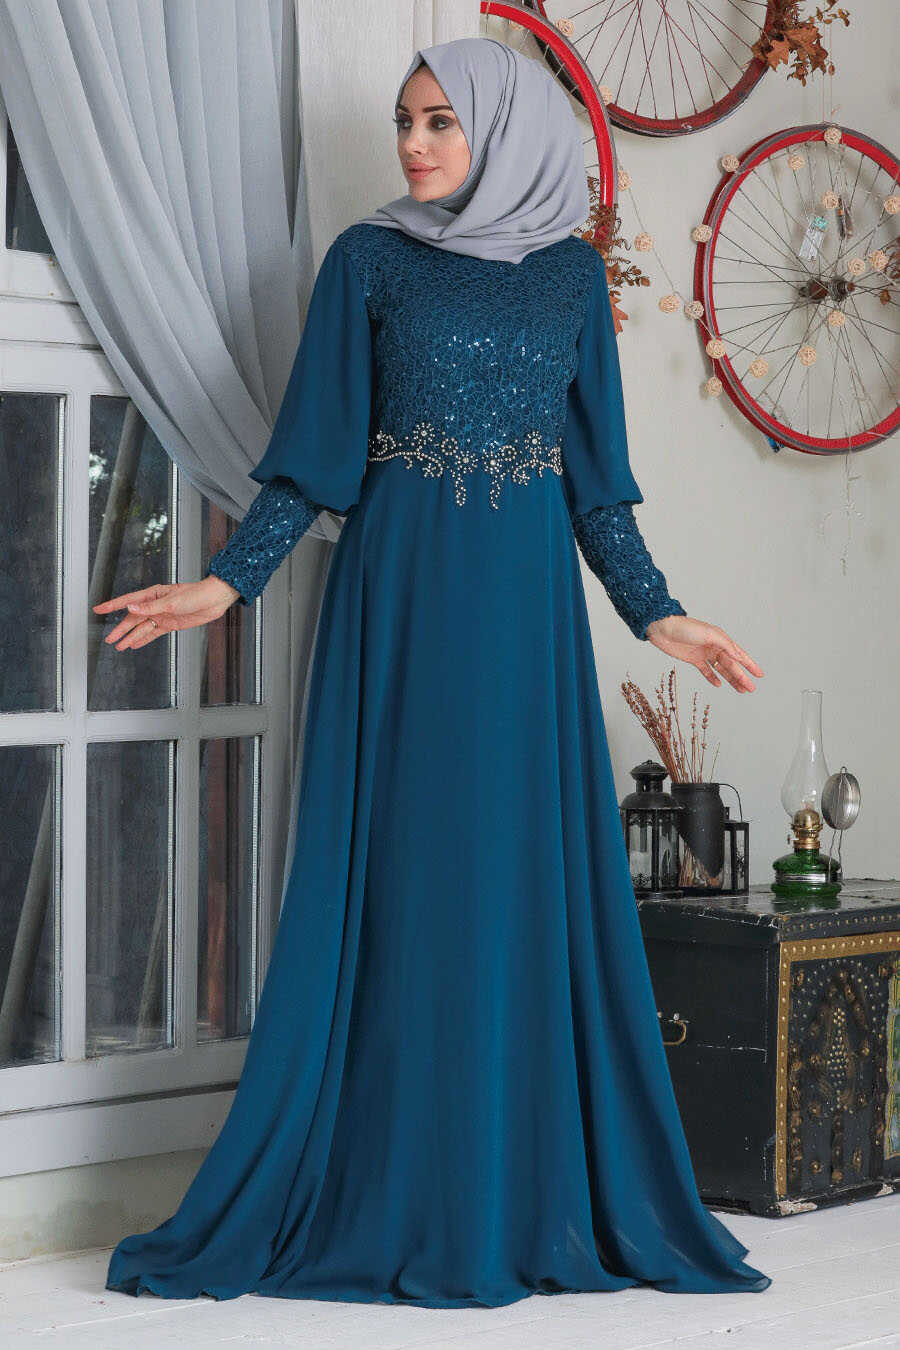 İndigo Blue Hijab Evening Dress 50102IM